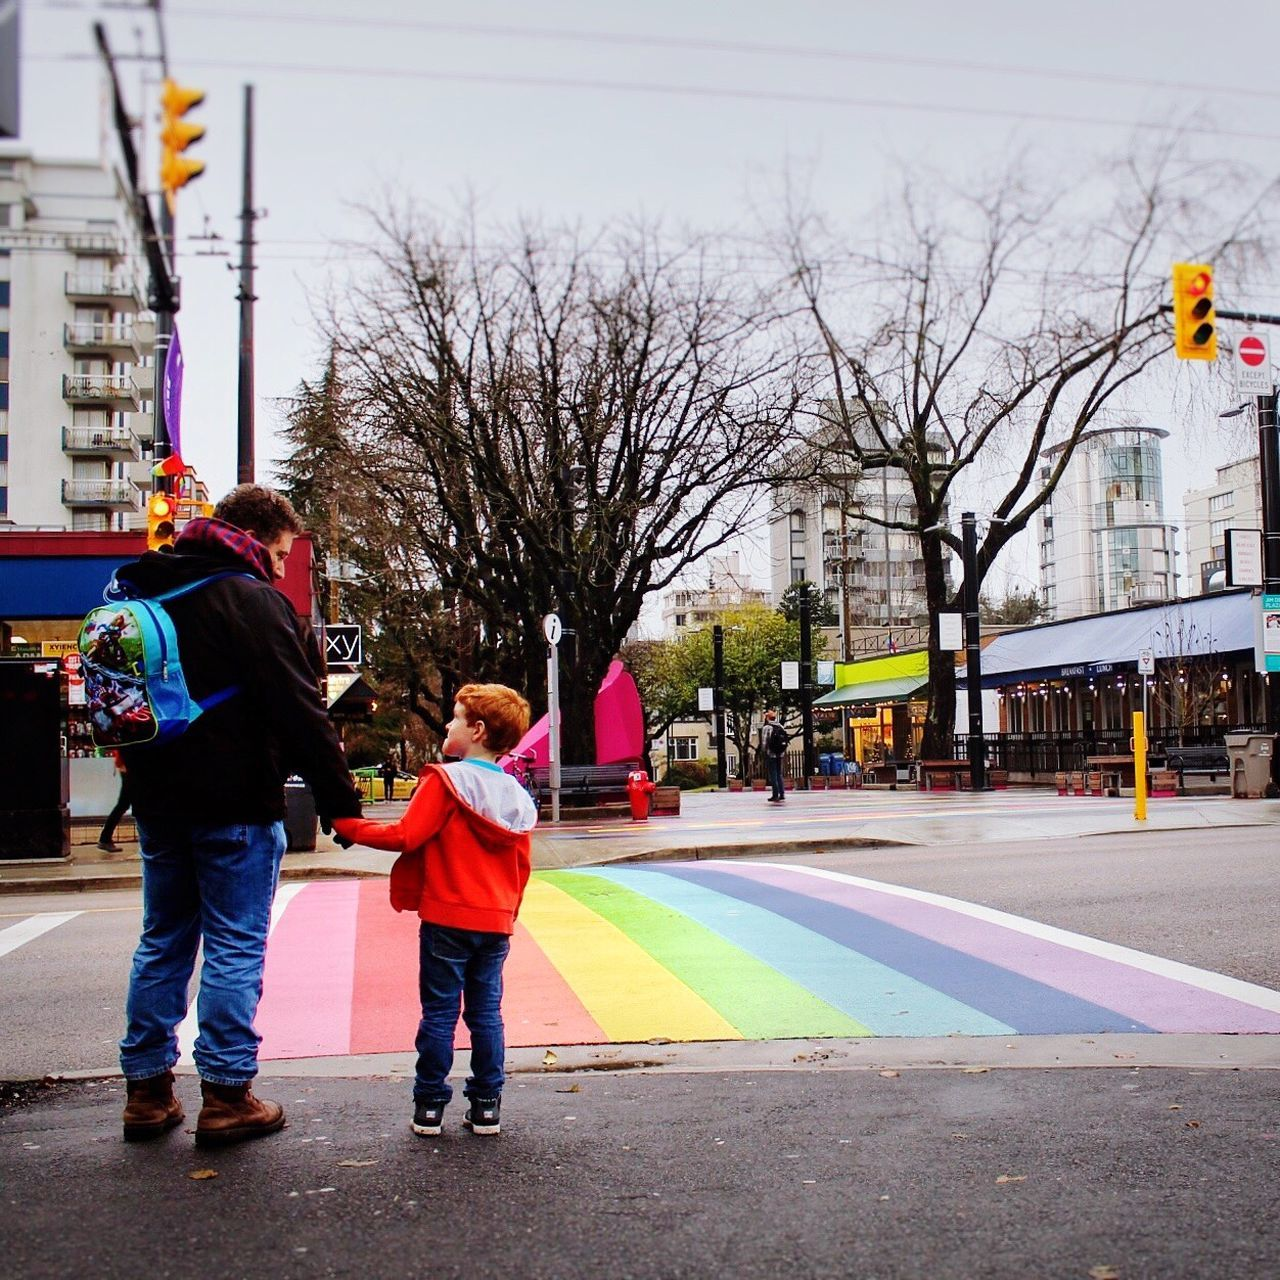 Gay Pride 🏳️🌈 sSafe FFreedom vVisibility hHuman MMan cChild CCrosswalk sStreetphotography LLove tTogetherness tTwo People bBuilding Exterior CCity sSky oOutdoors